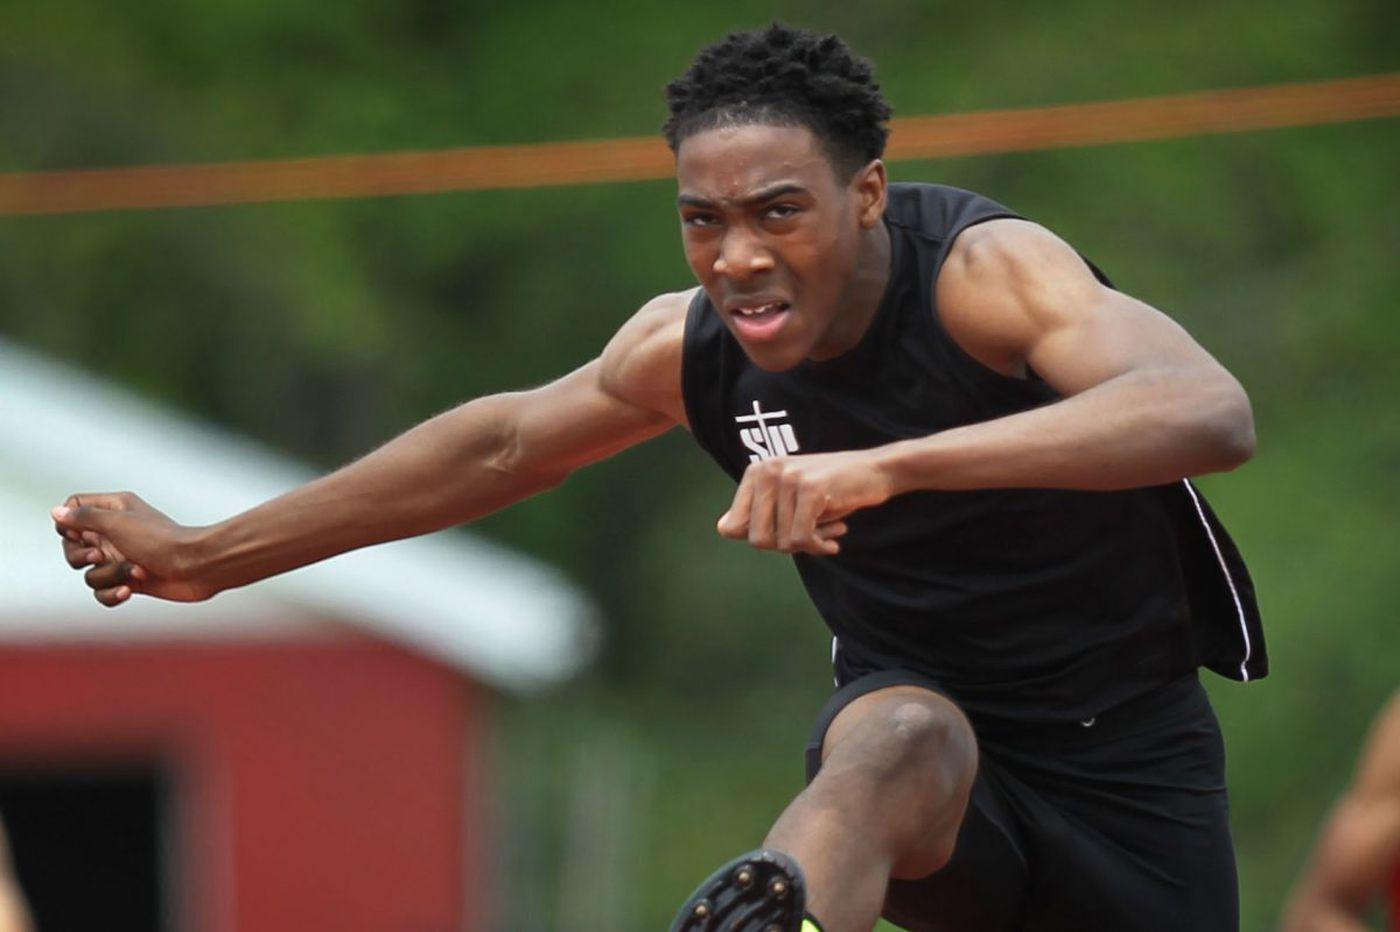 St. Joseph's Prep's Miles Green will continue track career at Virginia Tech